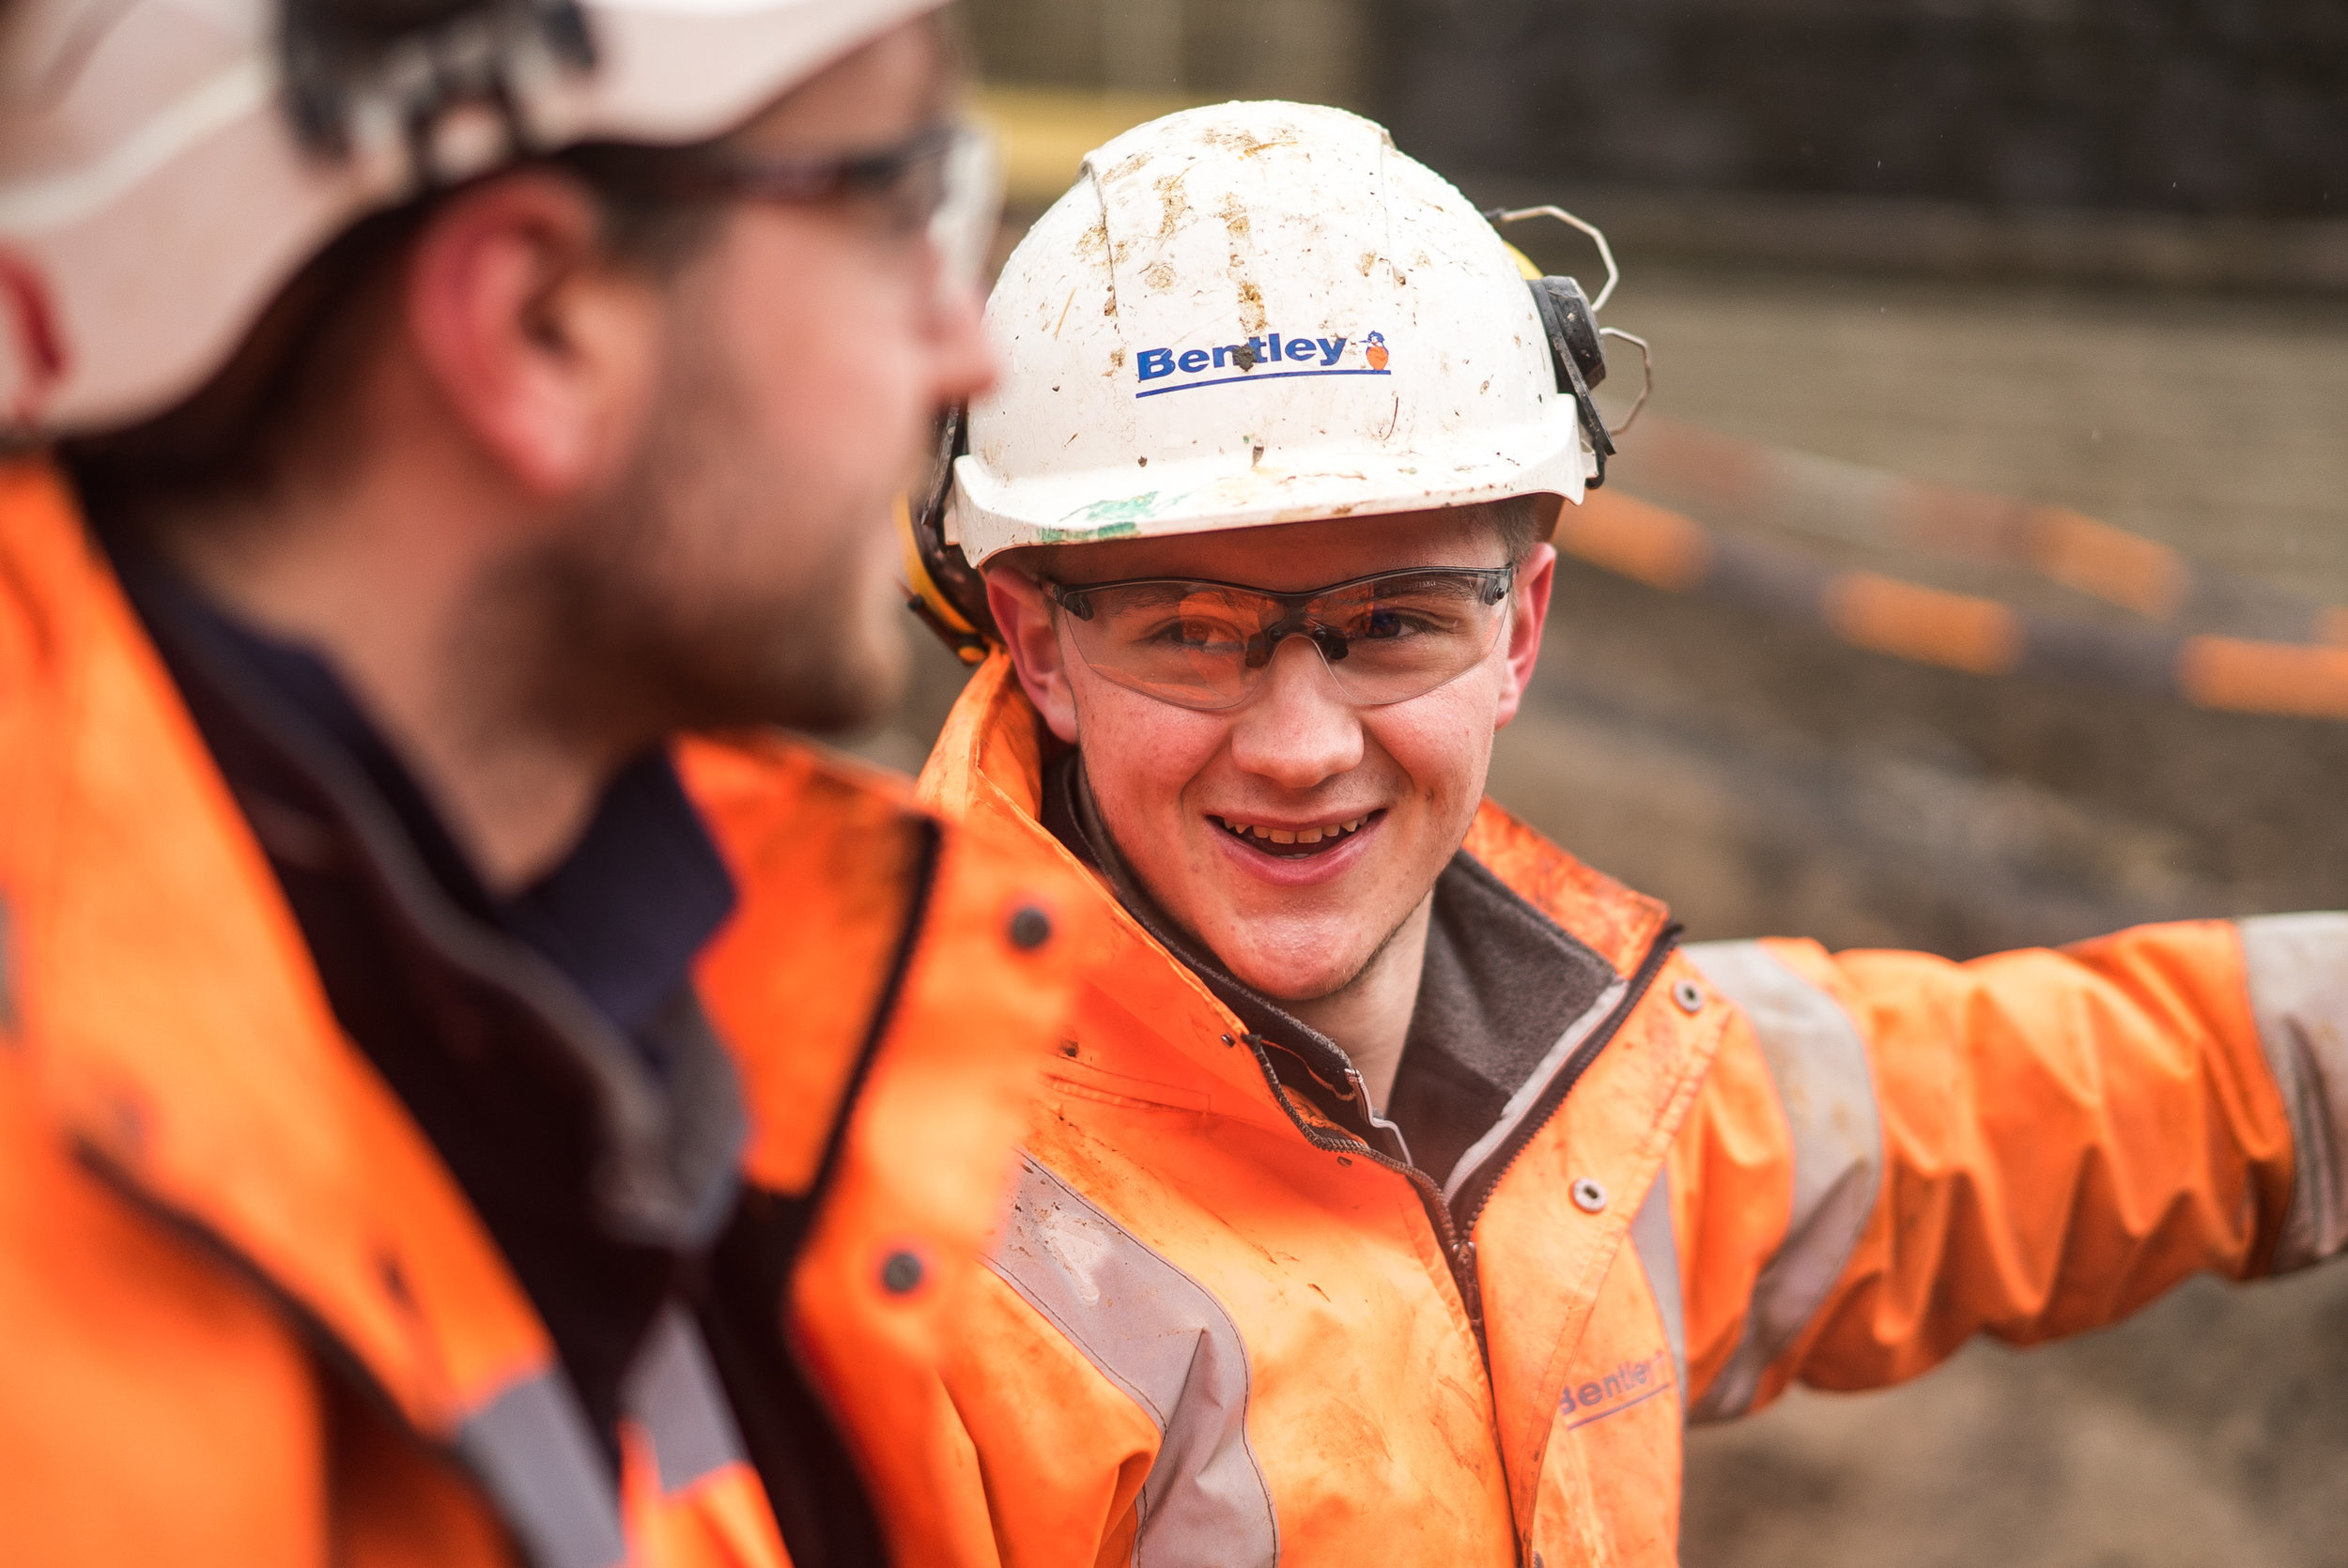 """JN Bentley - """"Apprenticeships work for JN Bentley because they're enabling us to bring people into and up through the business.They're practical and hands-on and give our mentors chance to develop their skills too."""""""